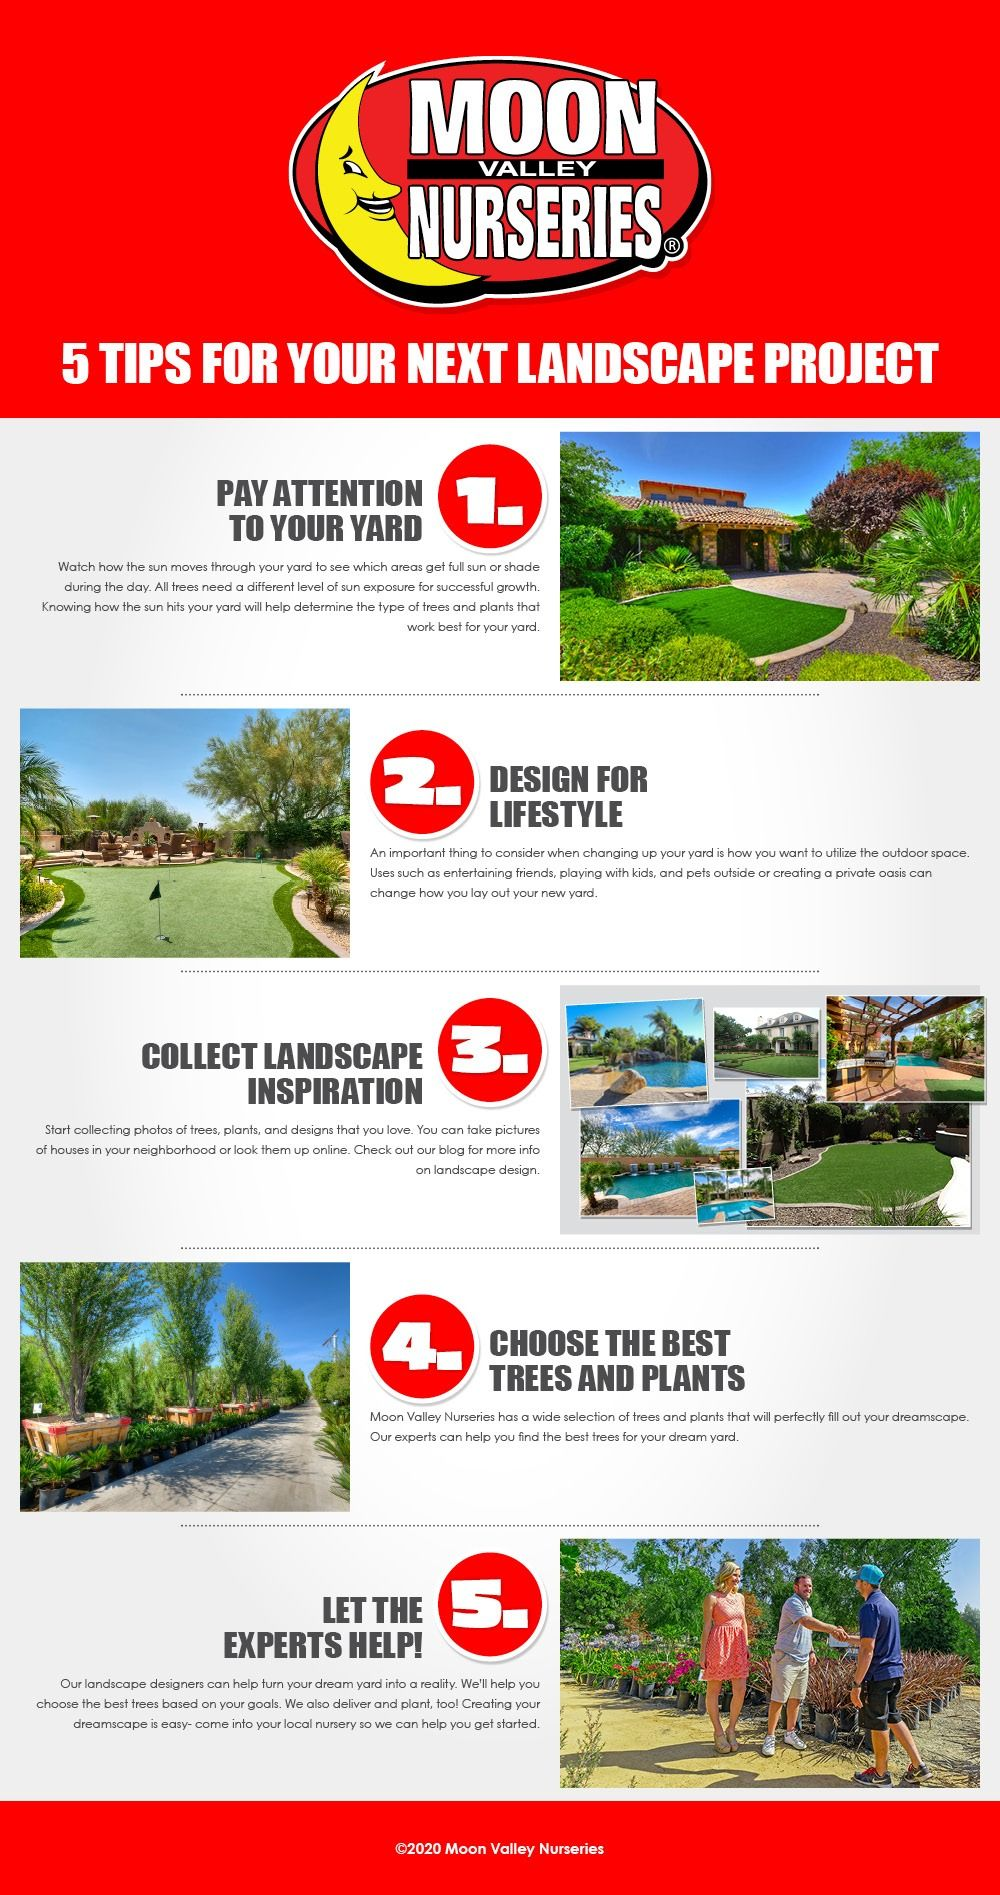 5 Tips For Your Next Landscape Project